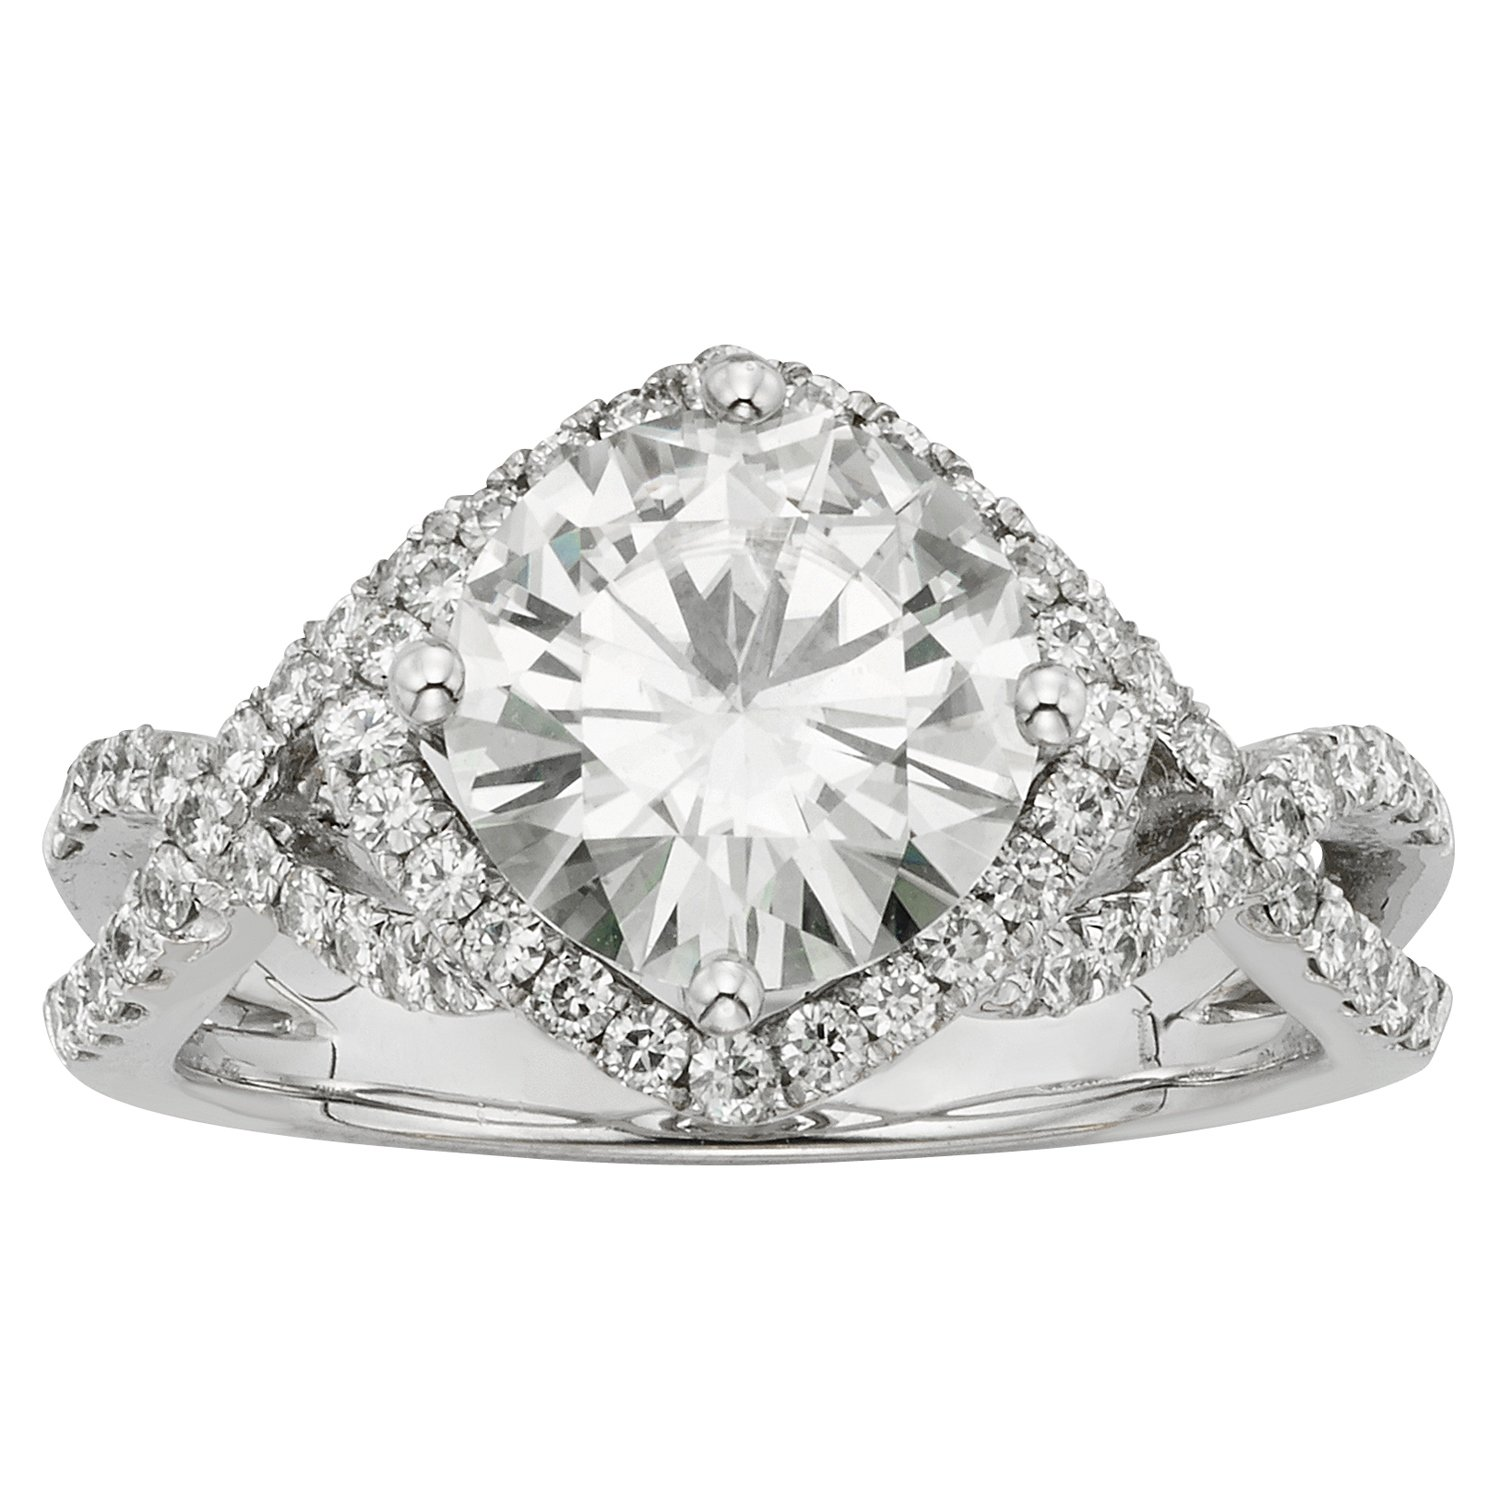 Forever Brilliant Round 9.0mm Moissanite Engagement Ring - size 7, 3.22cttw DEW By Charles & Colvard